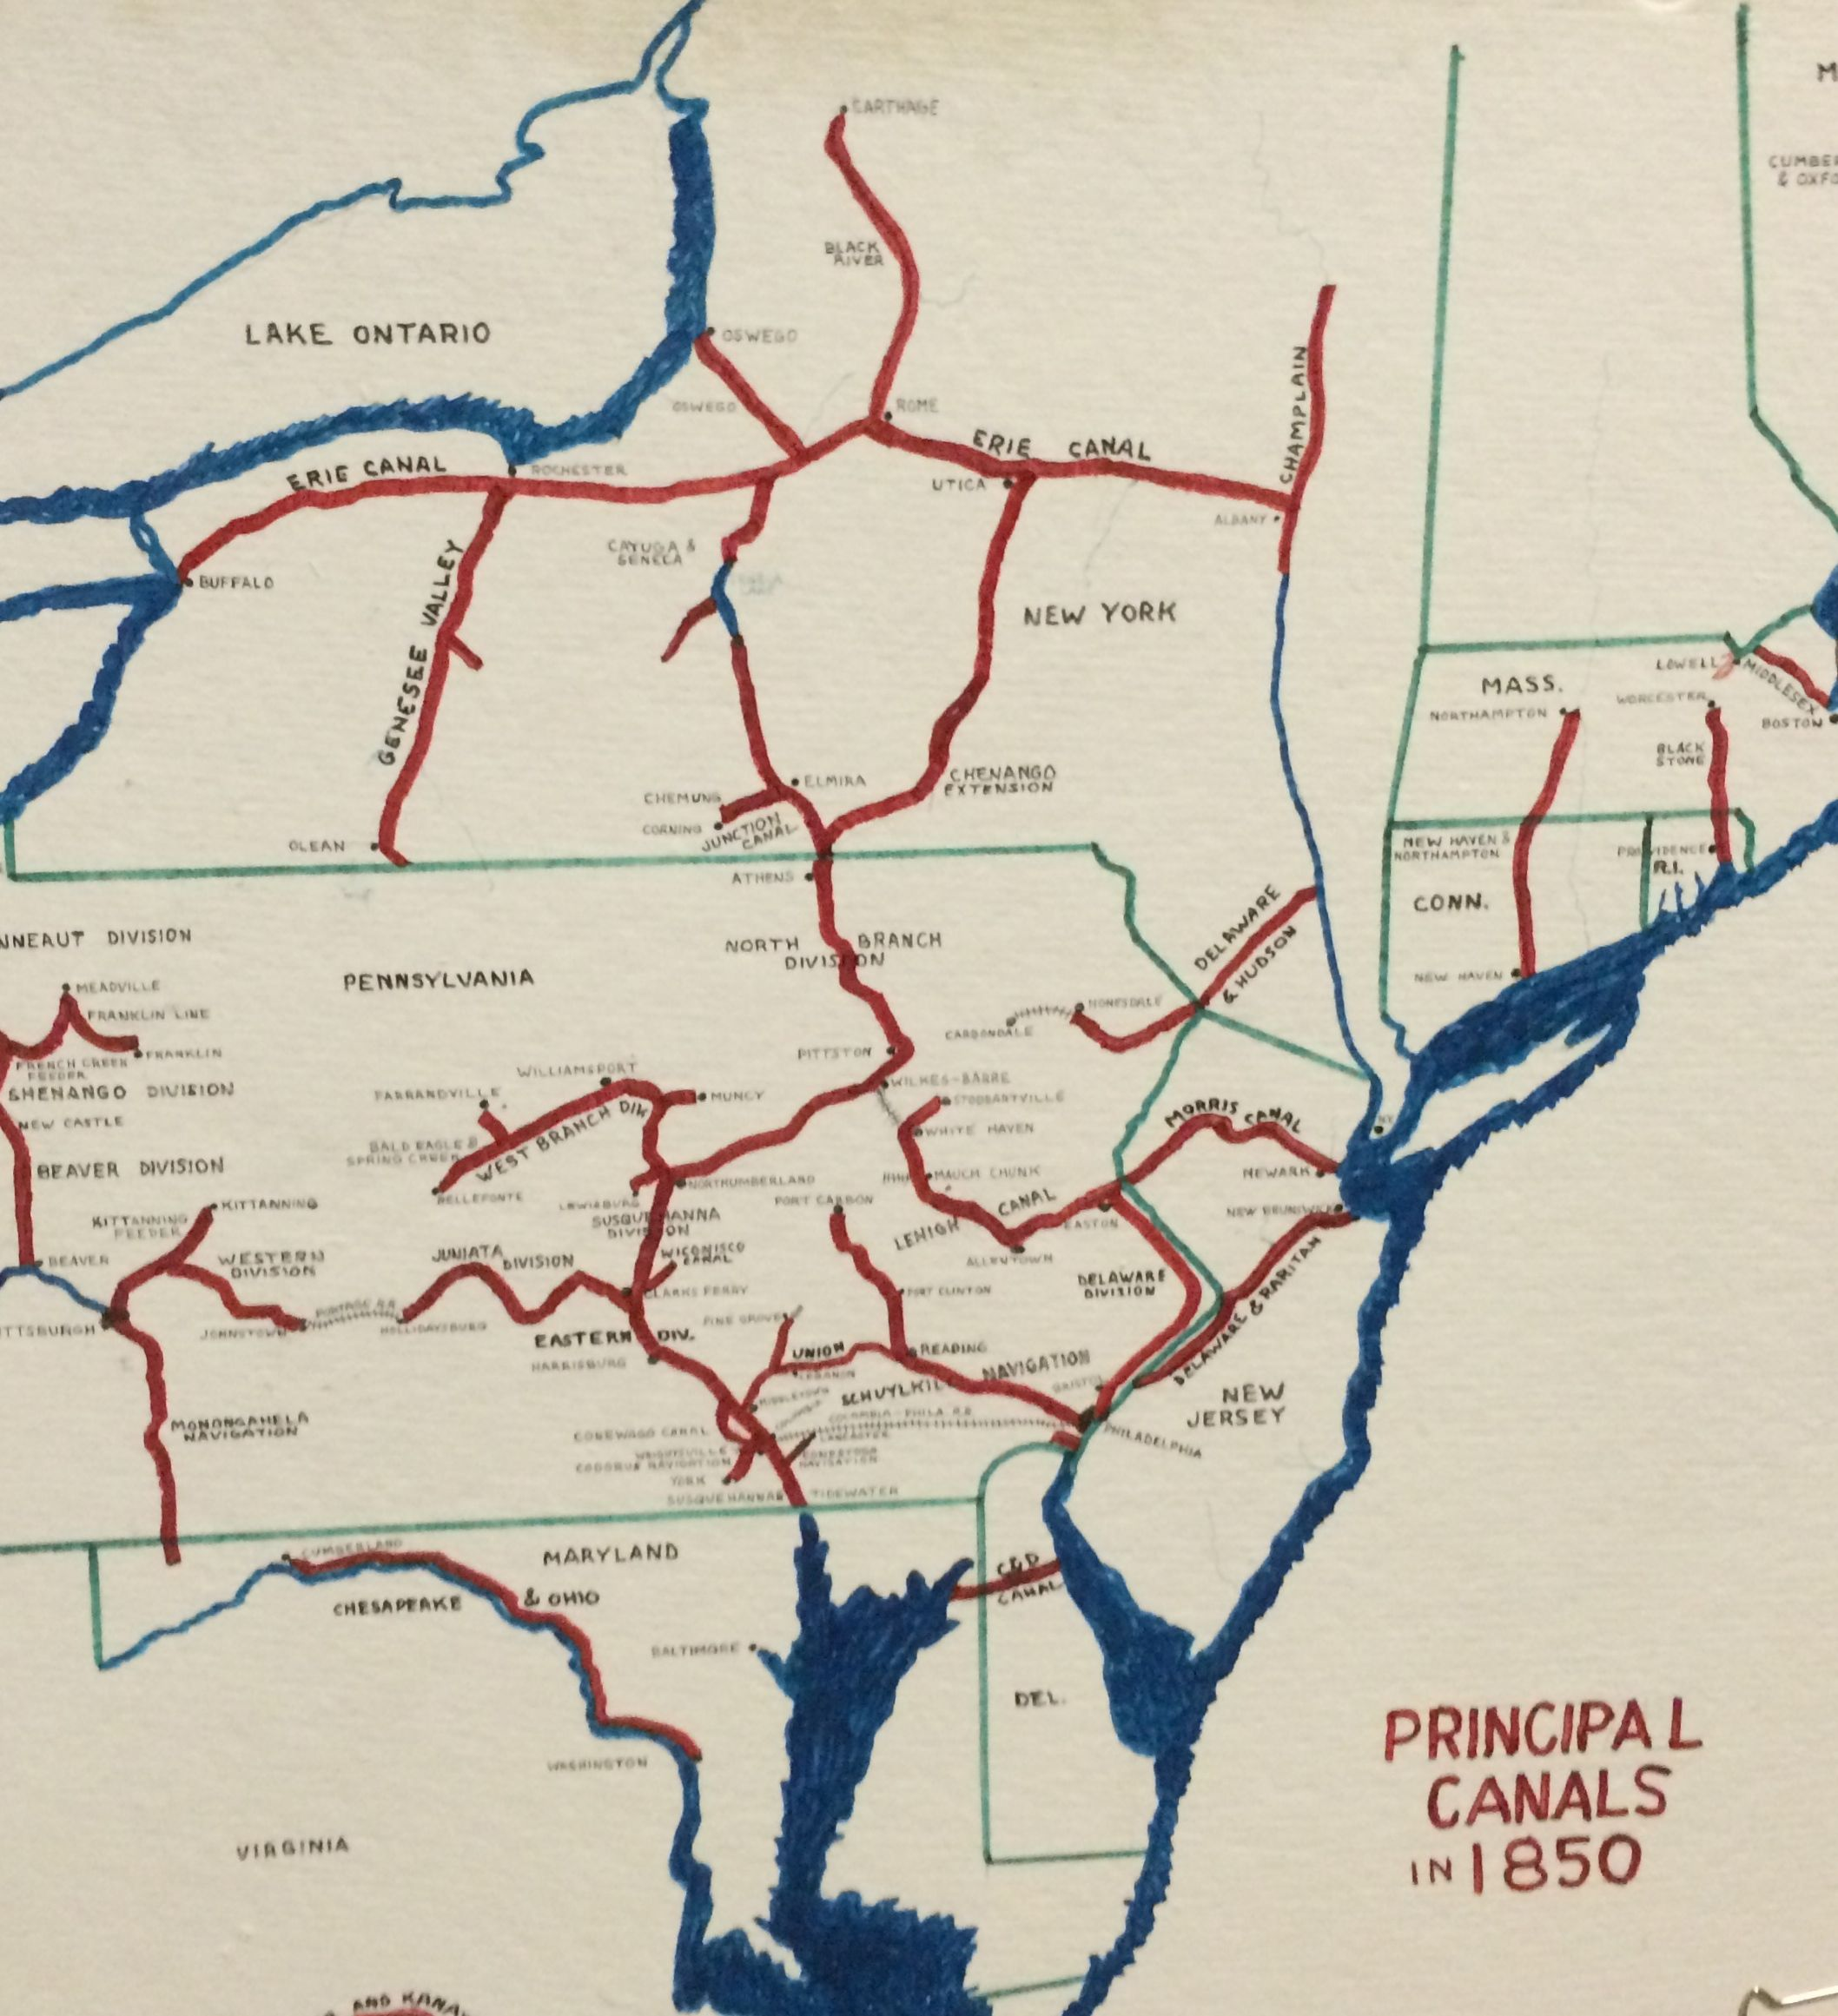 Principal canals in 1850